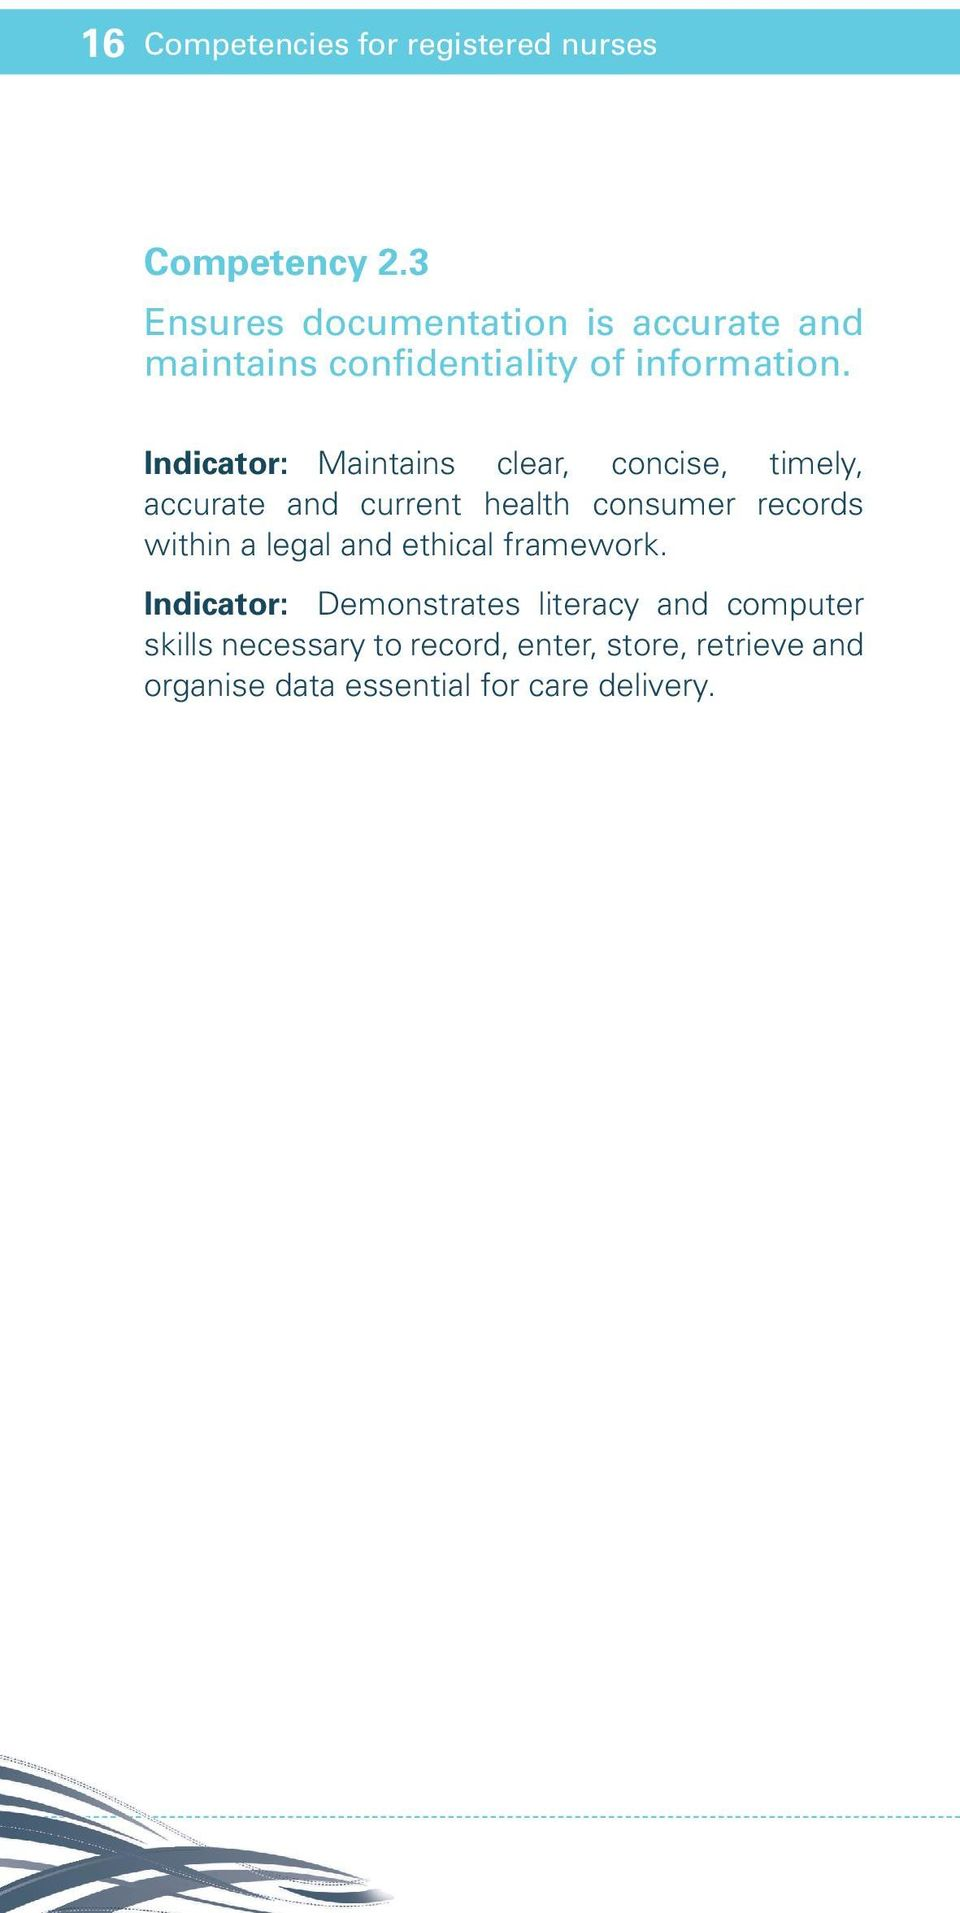 Indicator: Maintains clear, concise, timely, accurate and current health consumer records within a